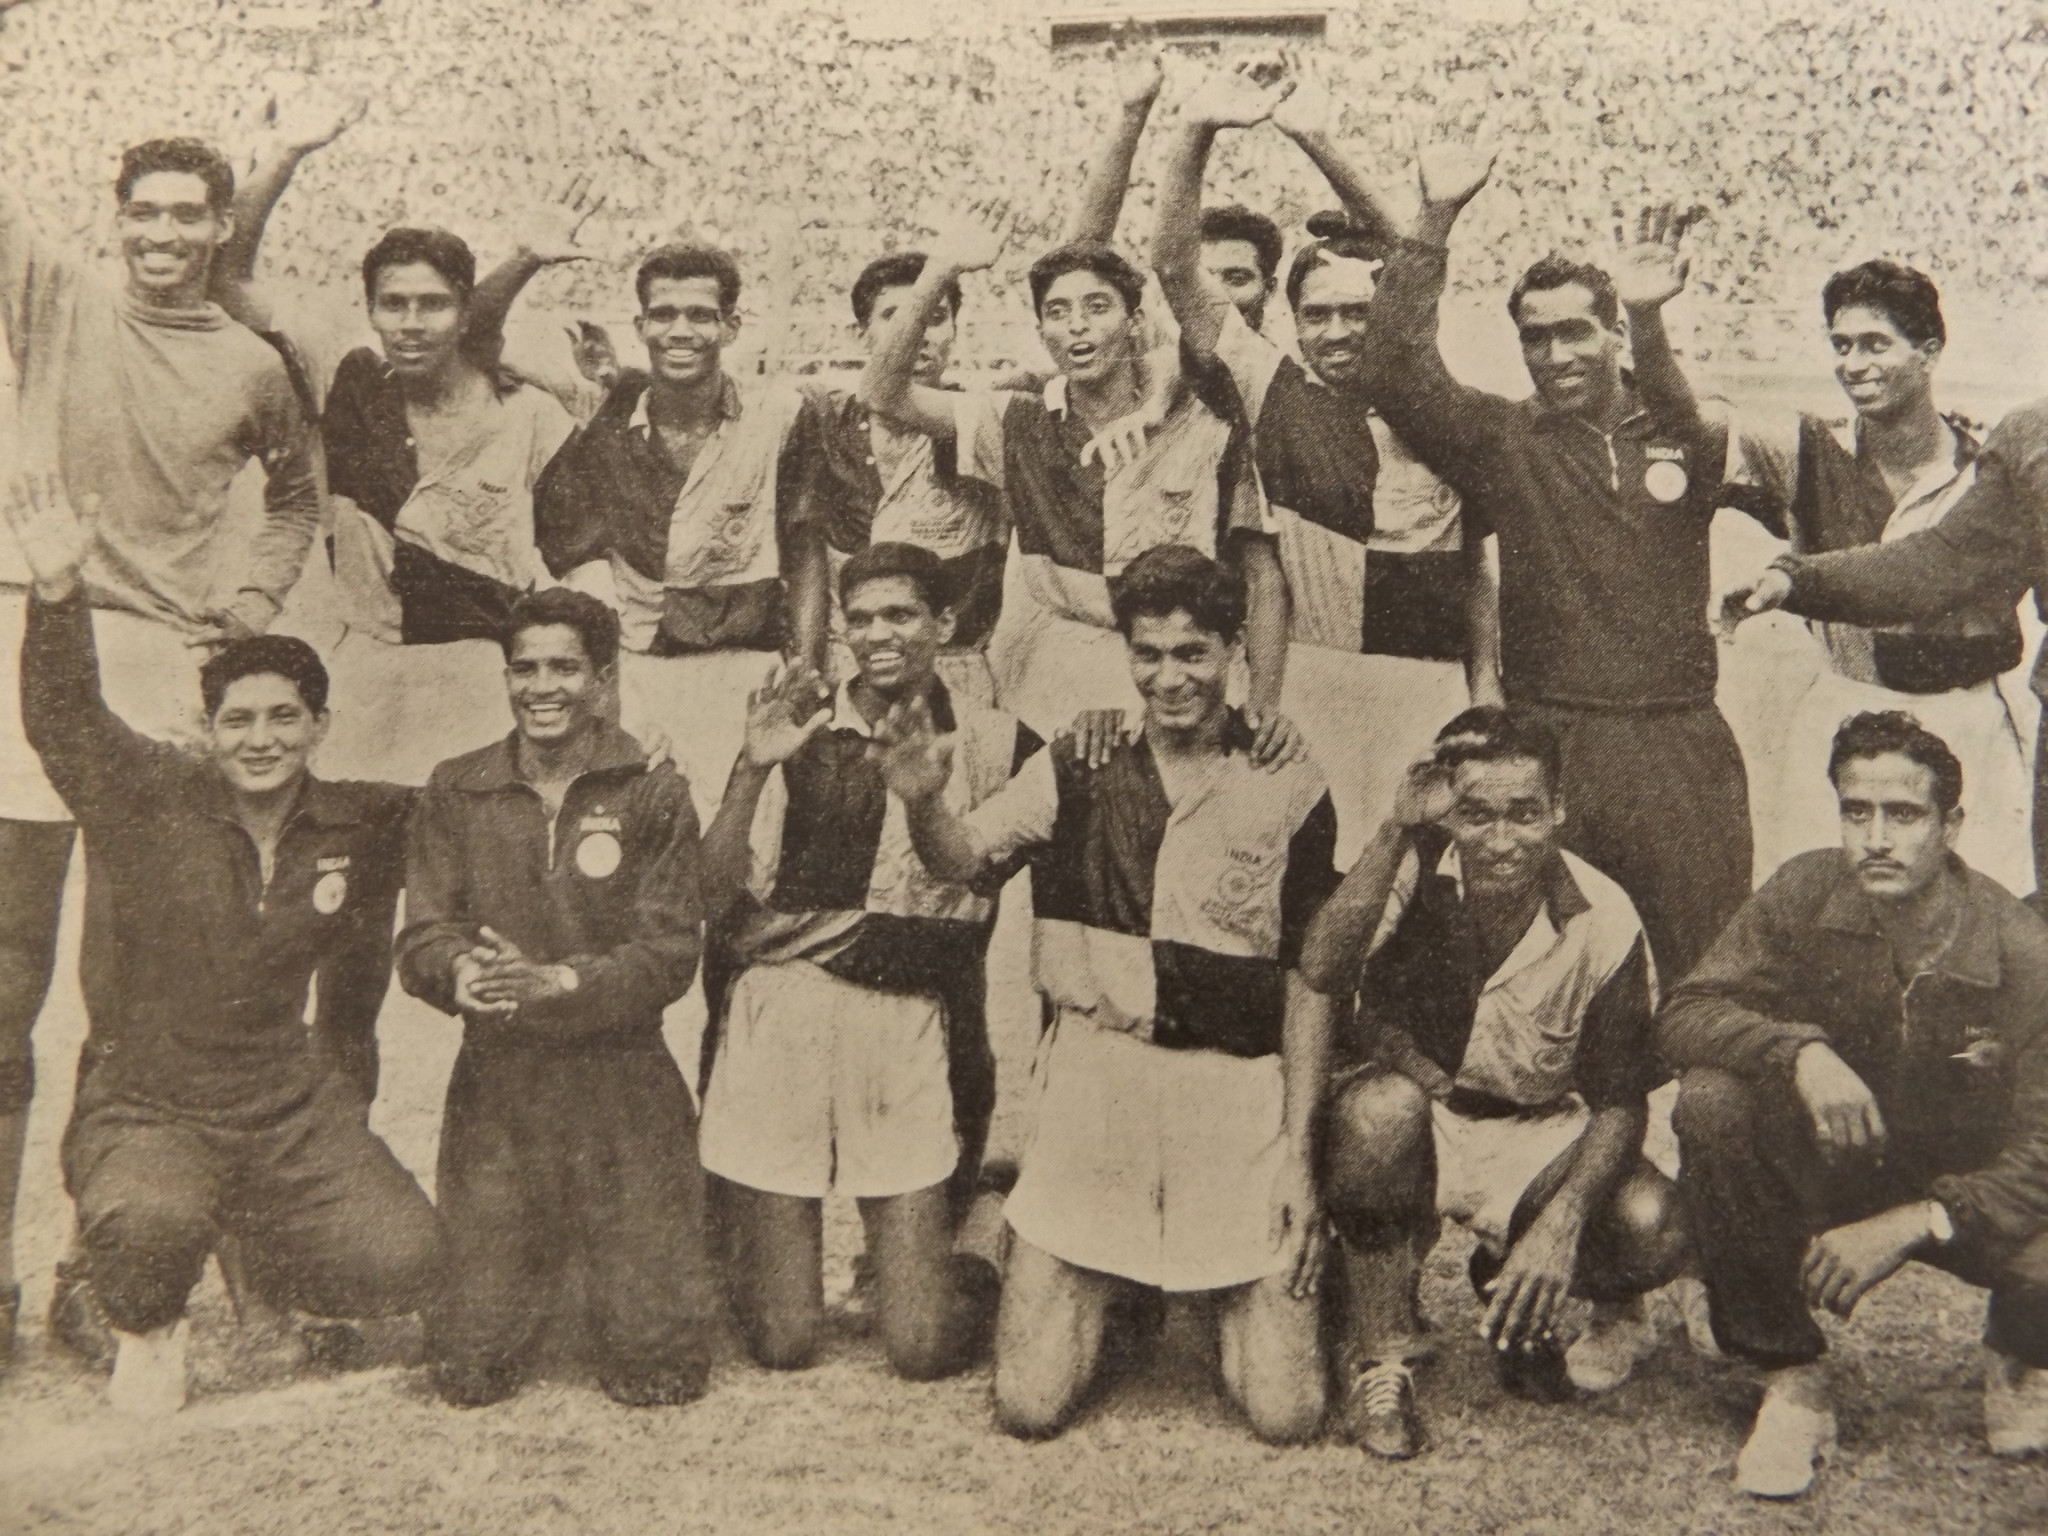 India celebrate their Asian Games gold medal in the football - a victory greeted with boos from local fans unhappy at criticism of their country and Government over their stance on Israel and Taiwan ©Official Report Jakarta 1962